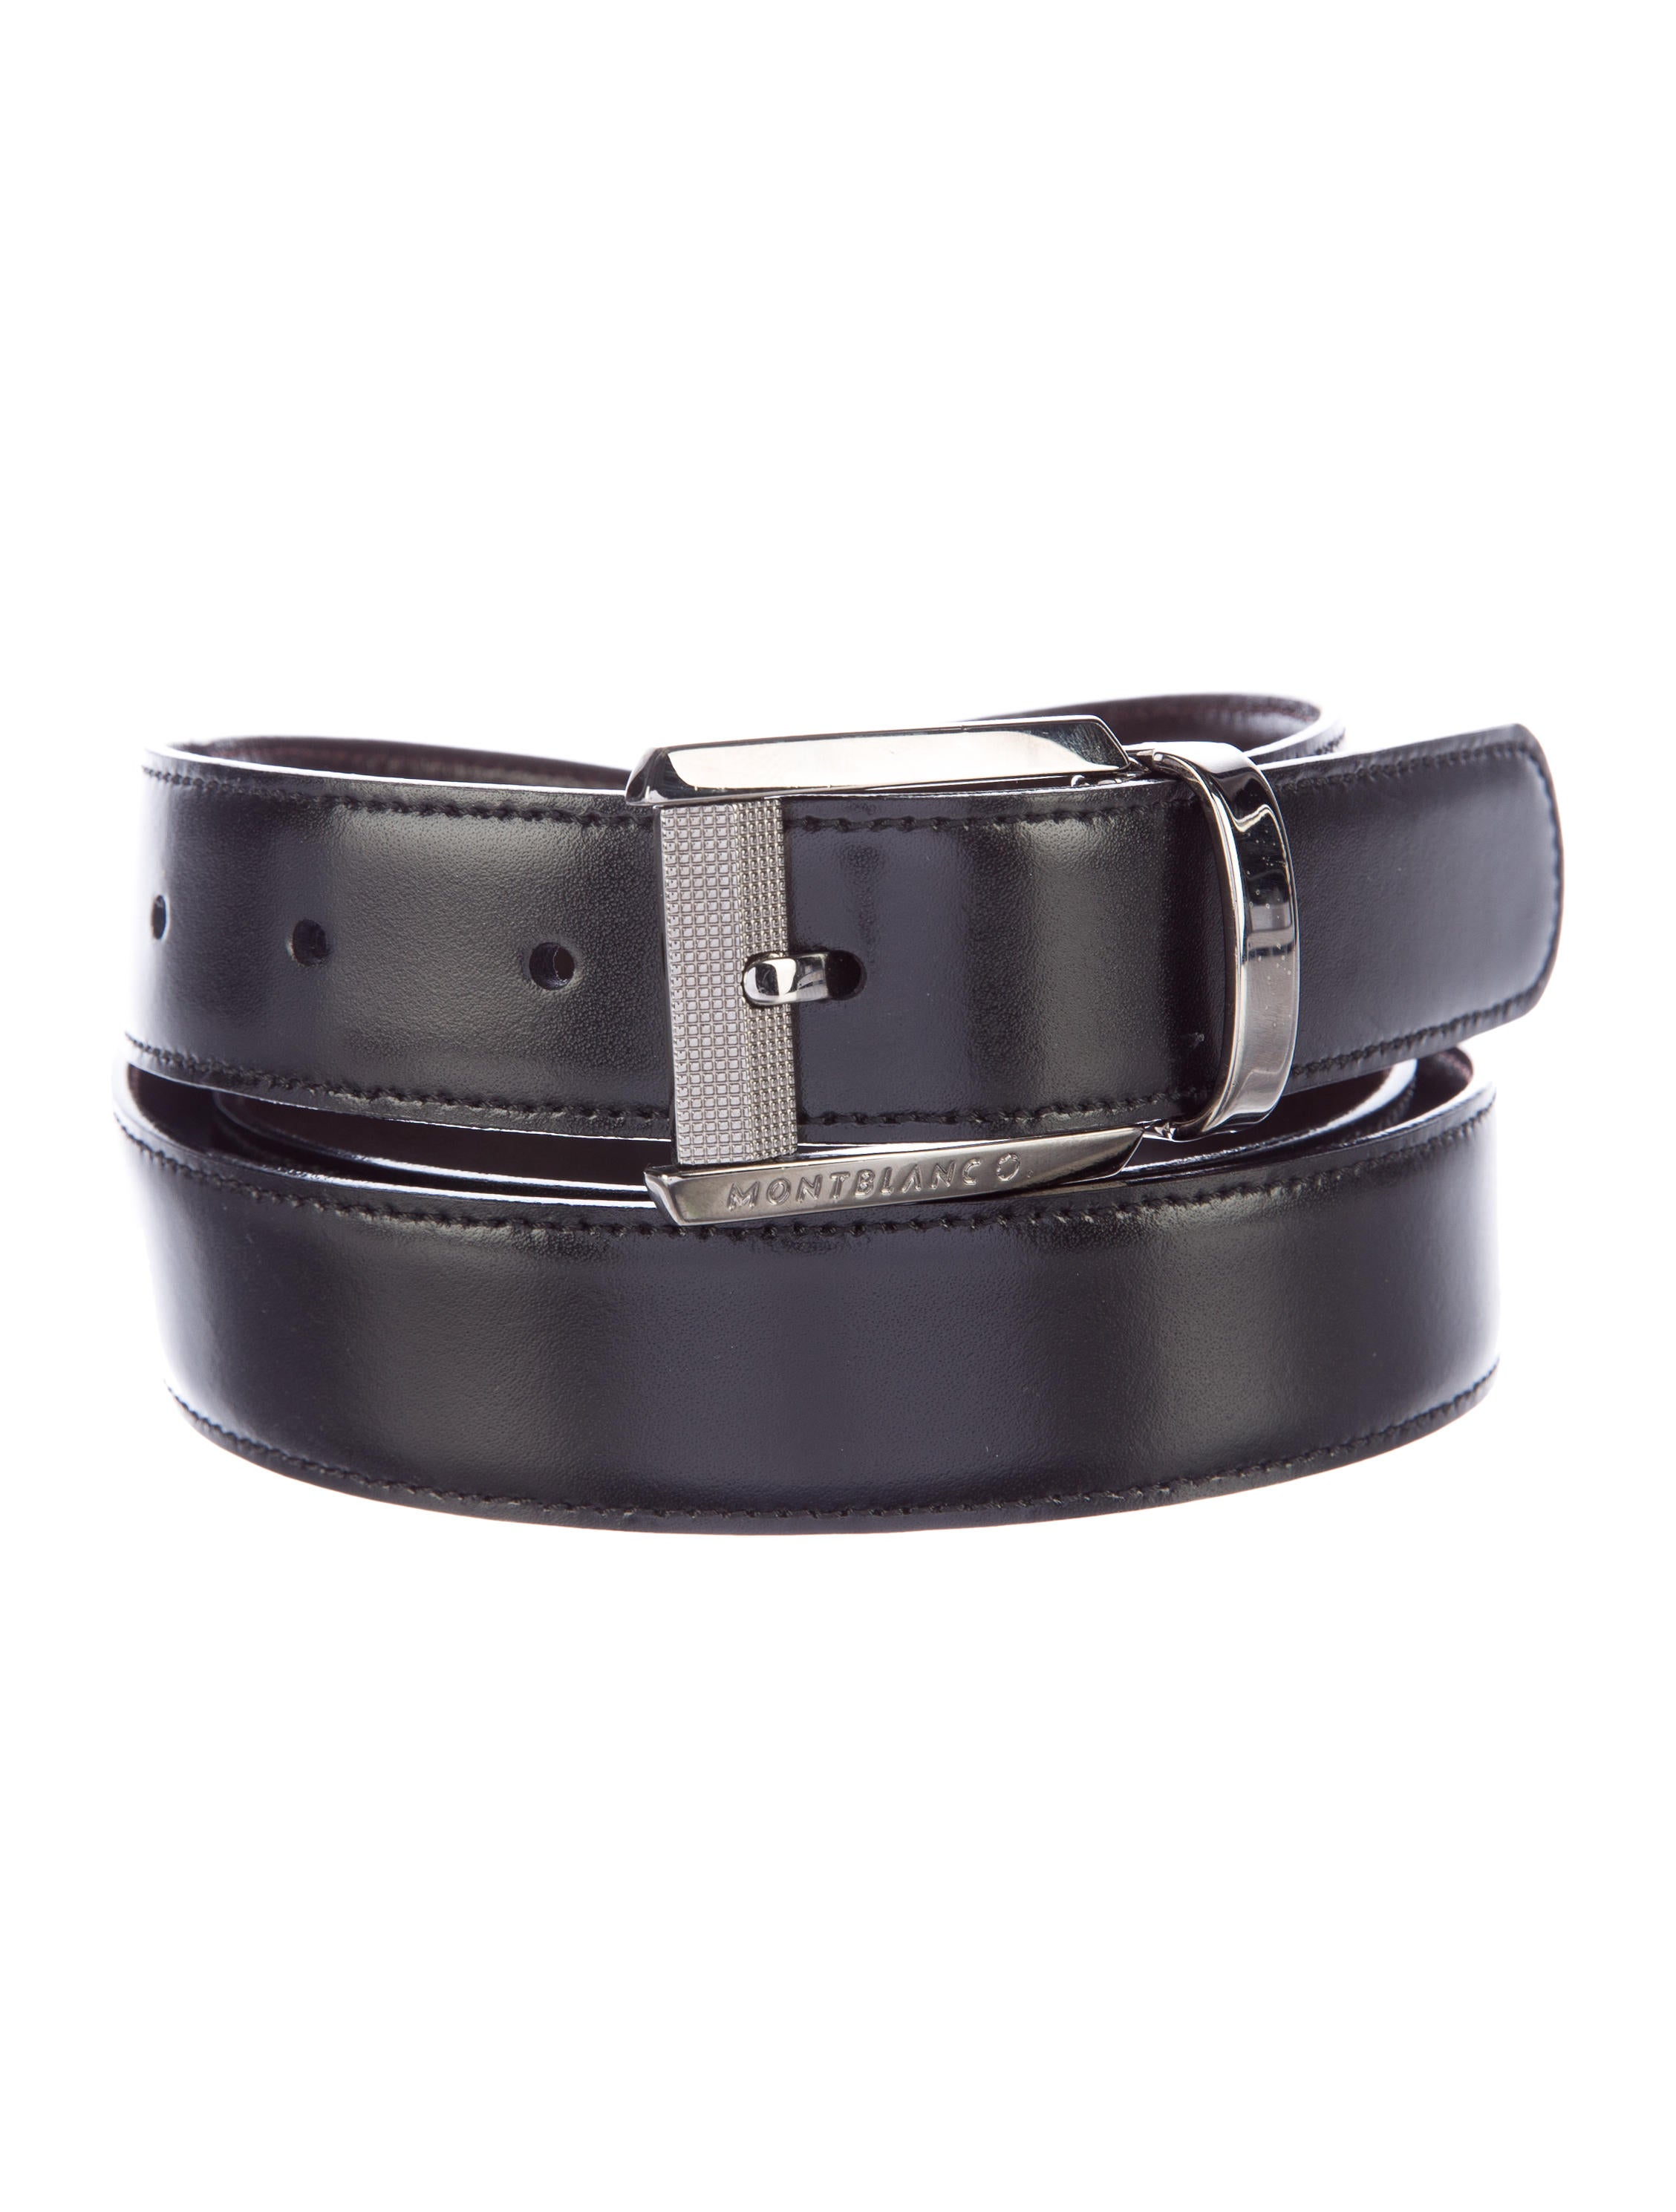 montblanc reversible leather belt accessories mbl21164